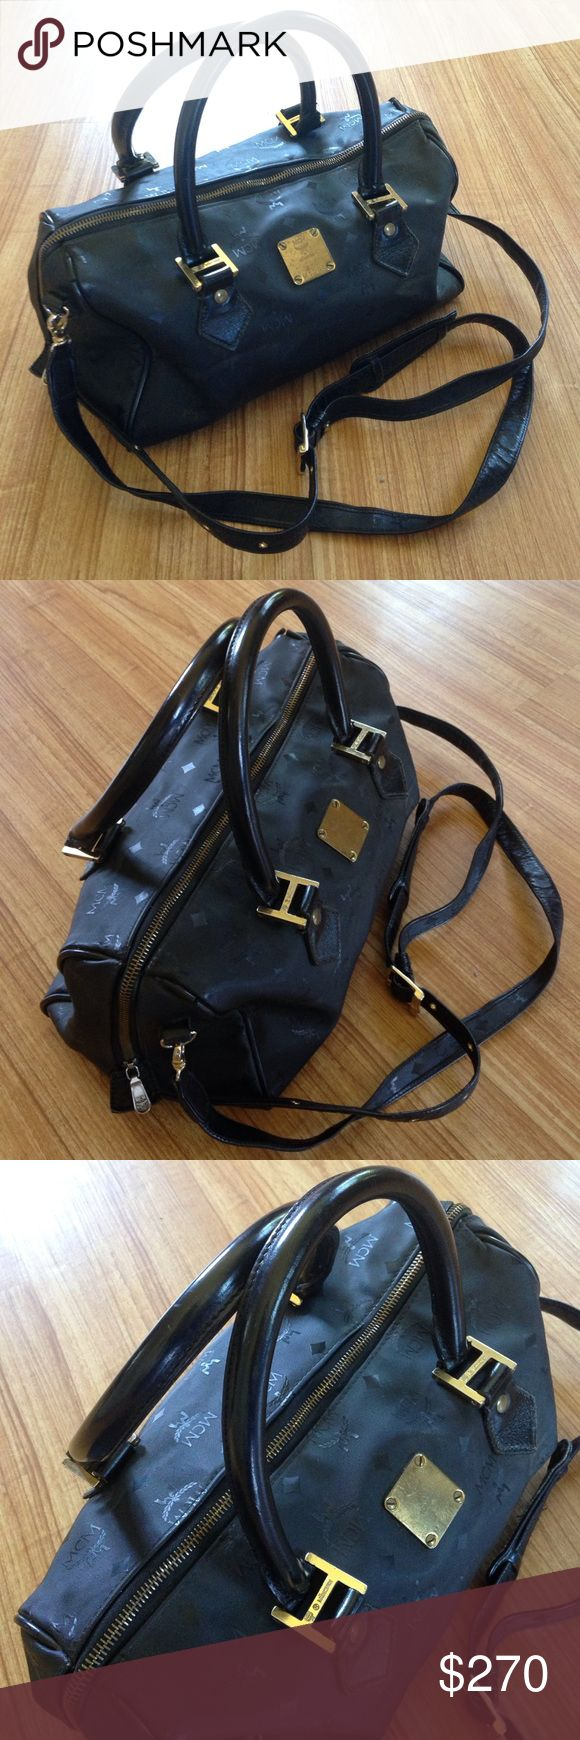 MCM Purse & Crossbody Authentic in good condition no damage the inside needs a light cleaning . A small hole inside the lining,,see pic. No trades Offers are welcomed. MCM Bags Satchels